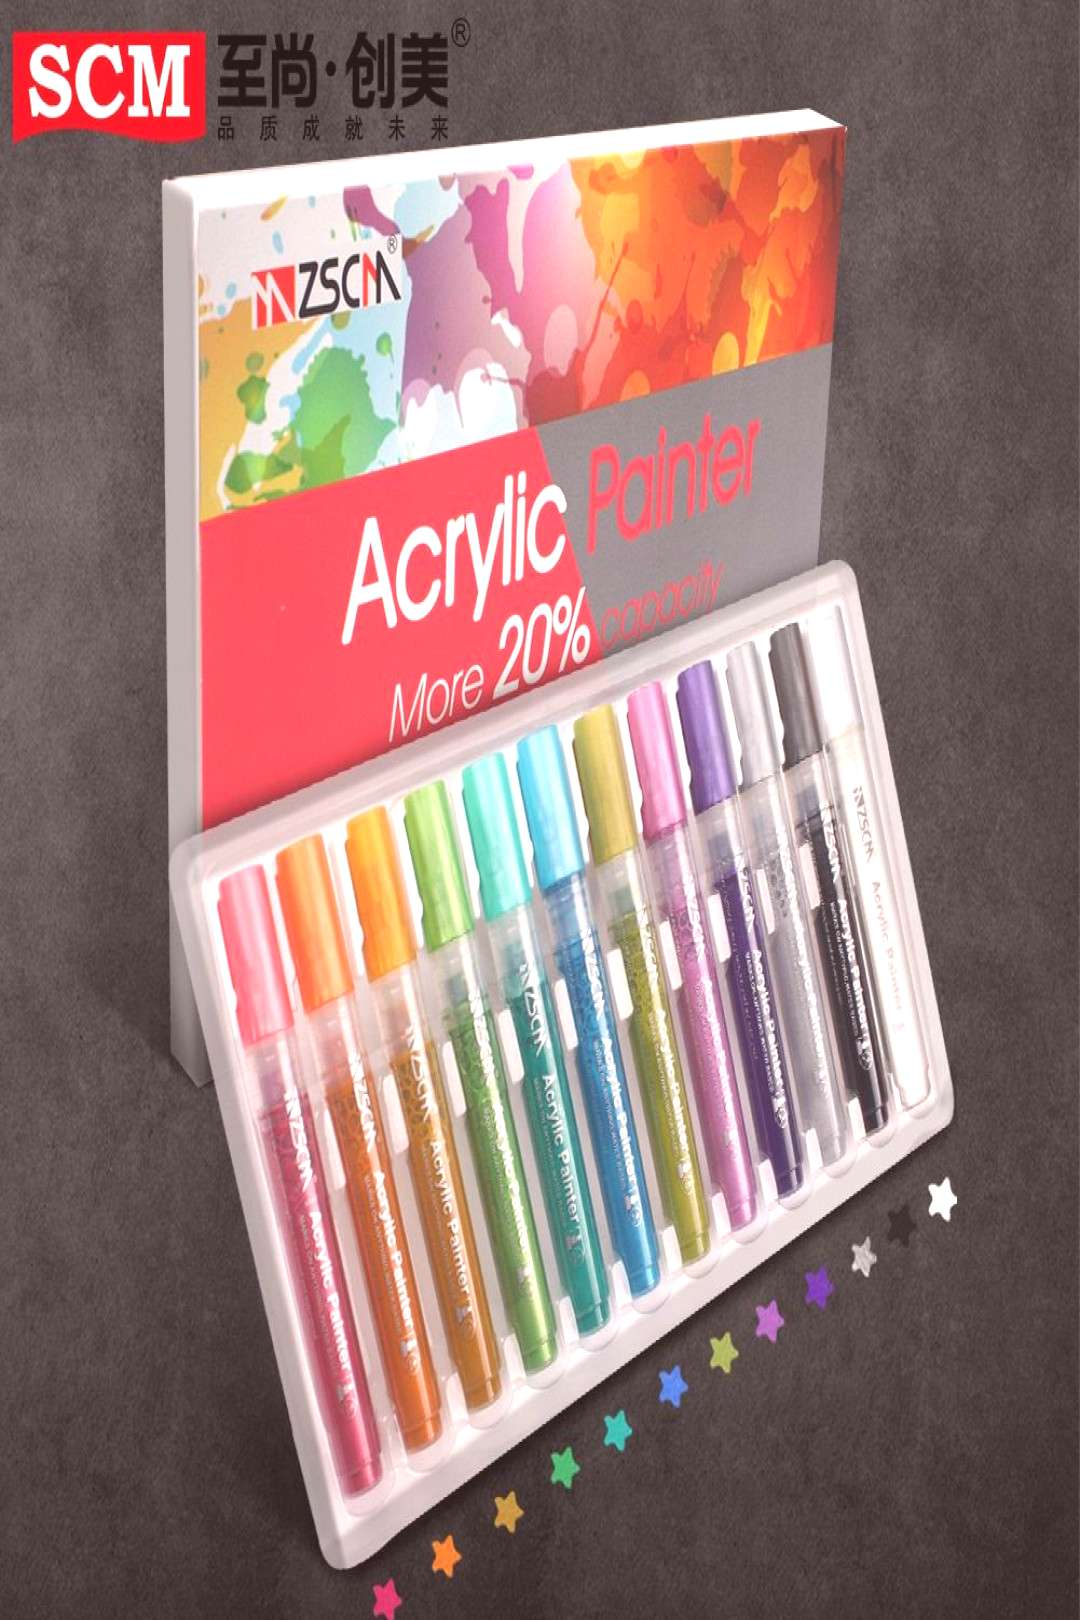 12pcs/set Acrylic Painter Metallic Marker Water-based Pigment Ink Marker Pens Candy Waterproof Colo